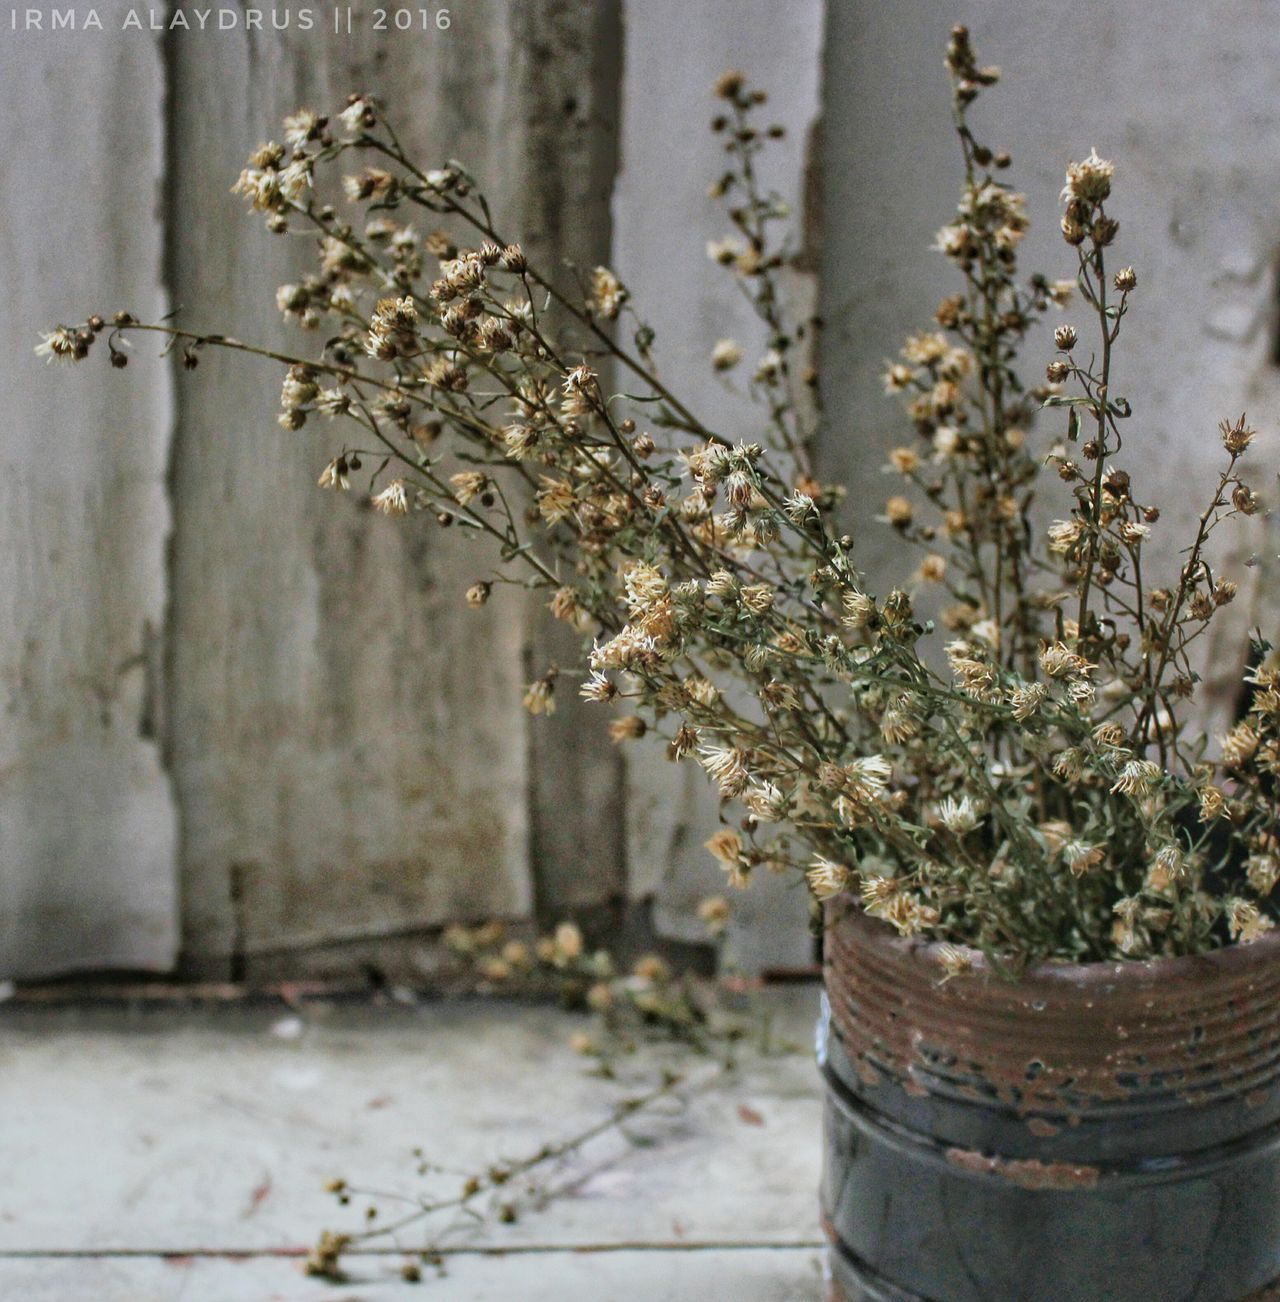 Dry and forgotten Tree Plant No People Nature Flower Close-up Dryleaves Dry Flower  Dry Leaves Foliage, Vegetation, Plants, Green, Leaves, Leafage, Undergrowth, Underbrush, Plant Life, Flora Still Life StillLifePhotography BestEyeemShots